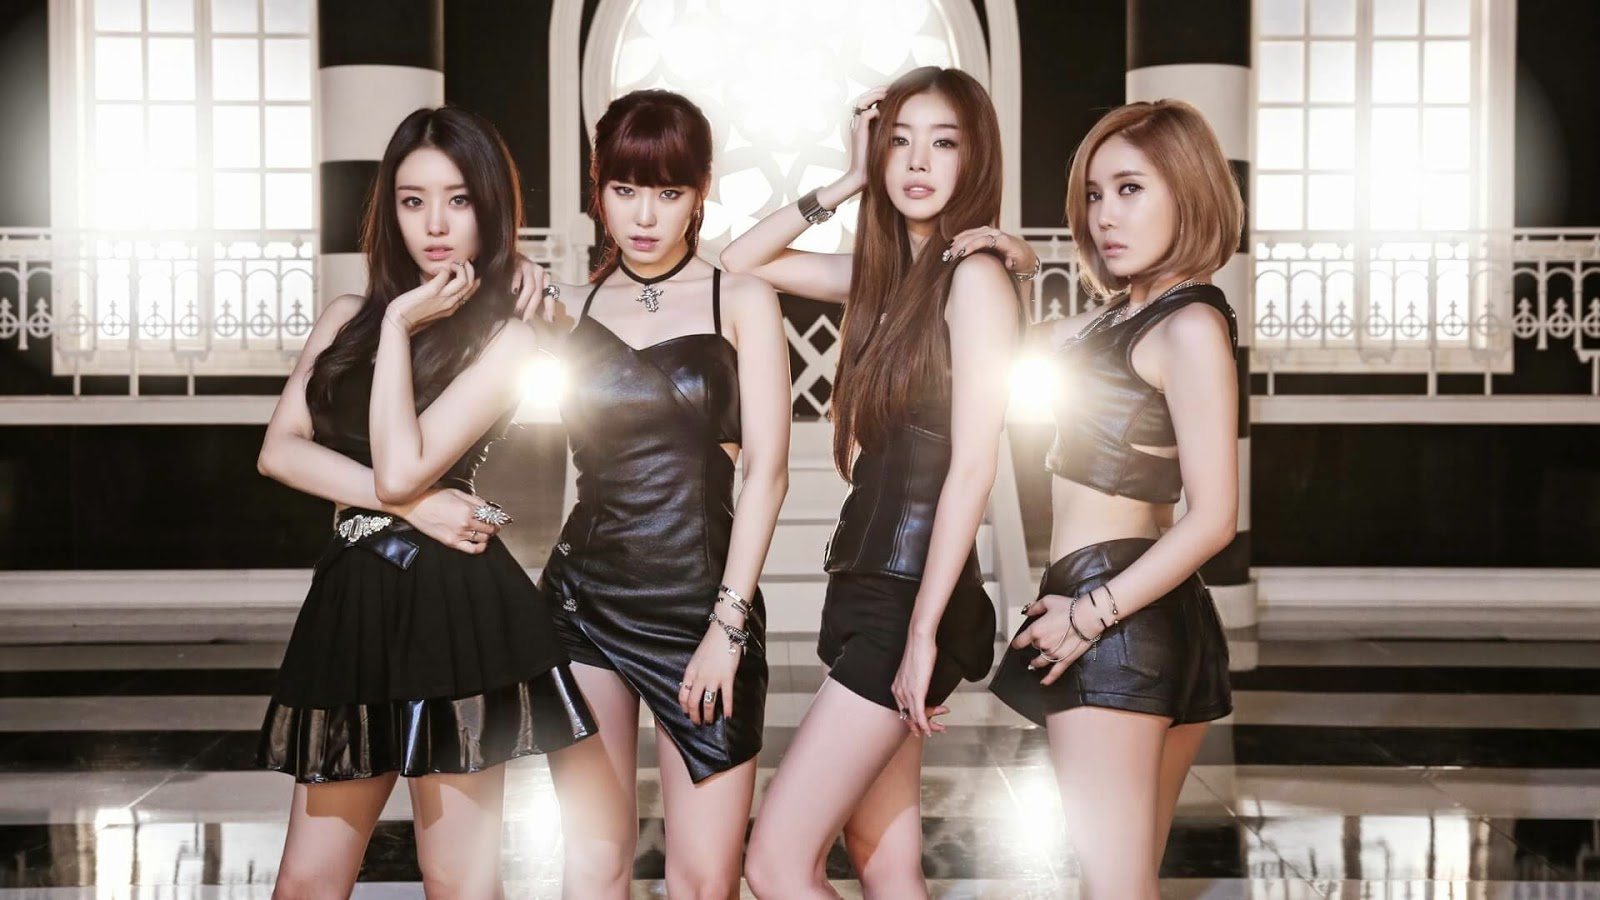 secret-ts-entertainment-ile-kontratini-yeniledi-kpopturk